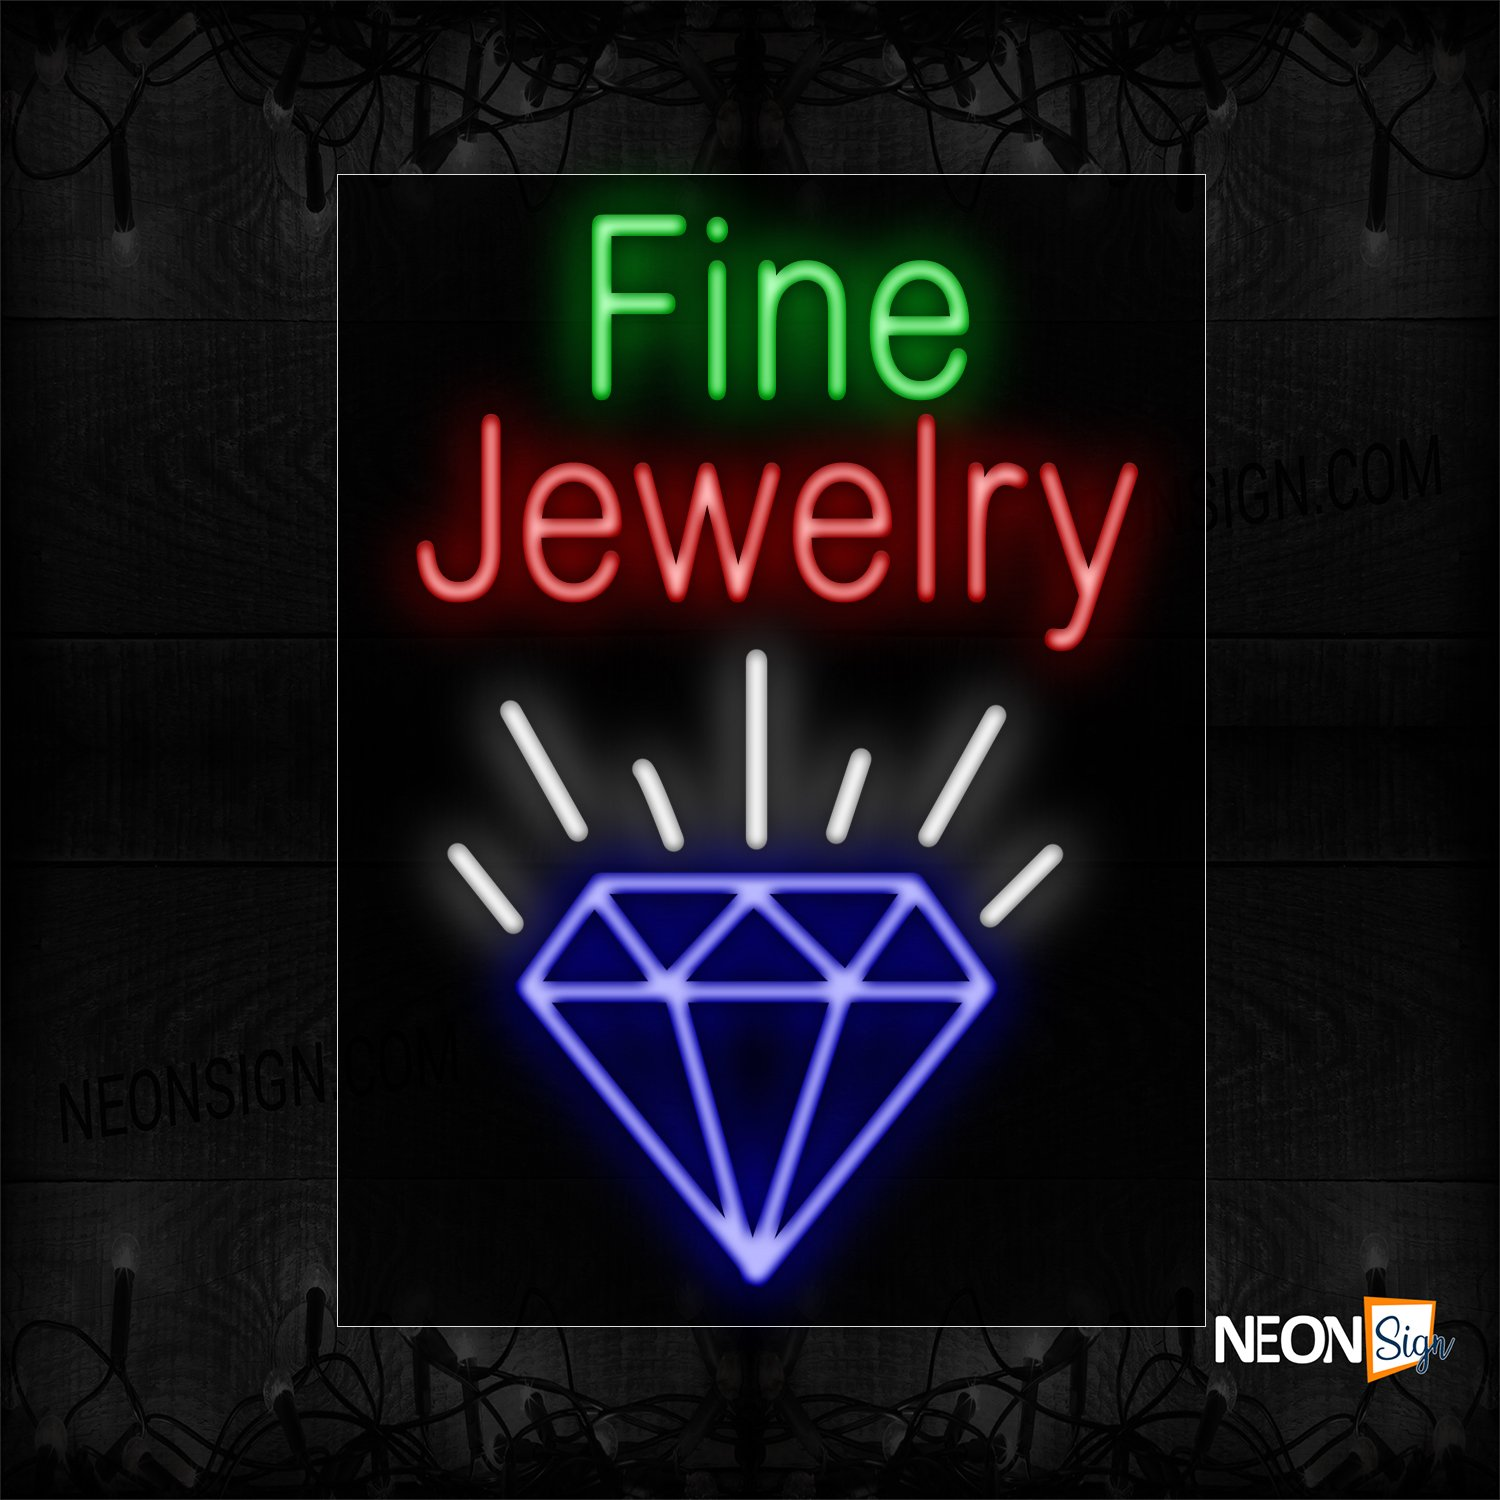 Image of 11701 Fine Jewelry And Logo Neon Sign_24x31 Black Backing